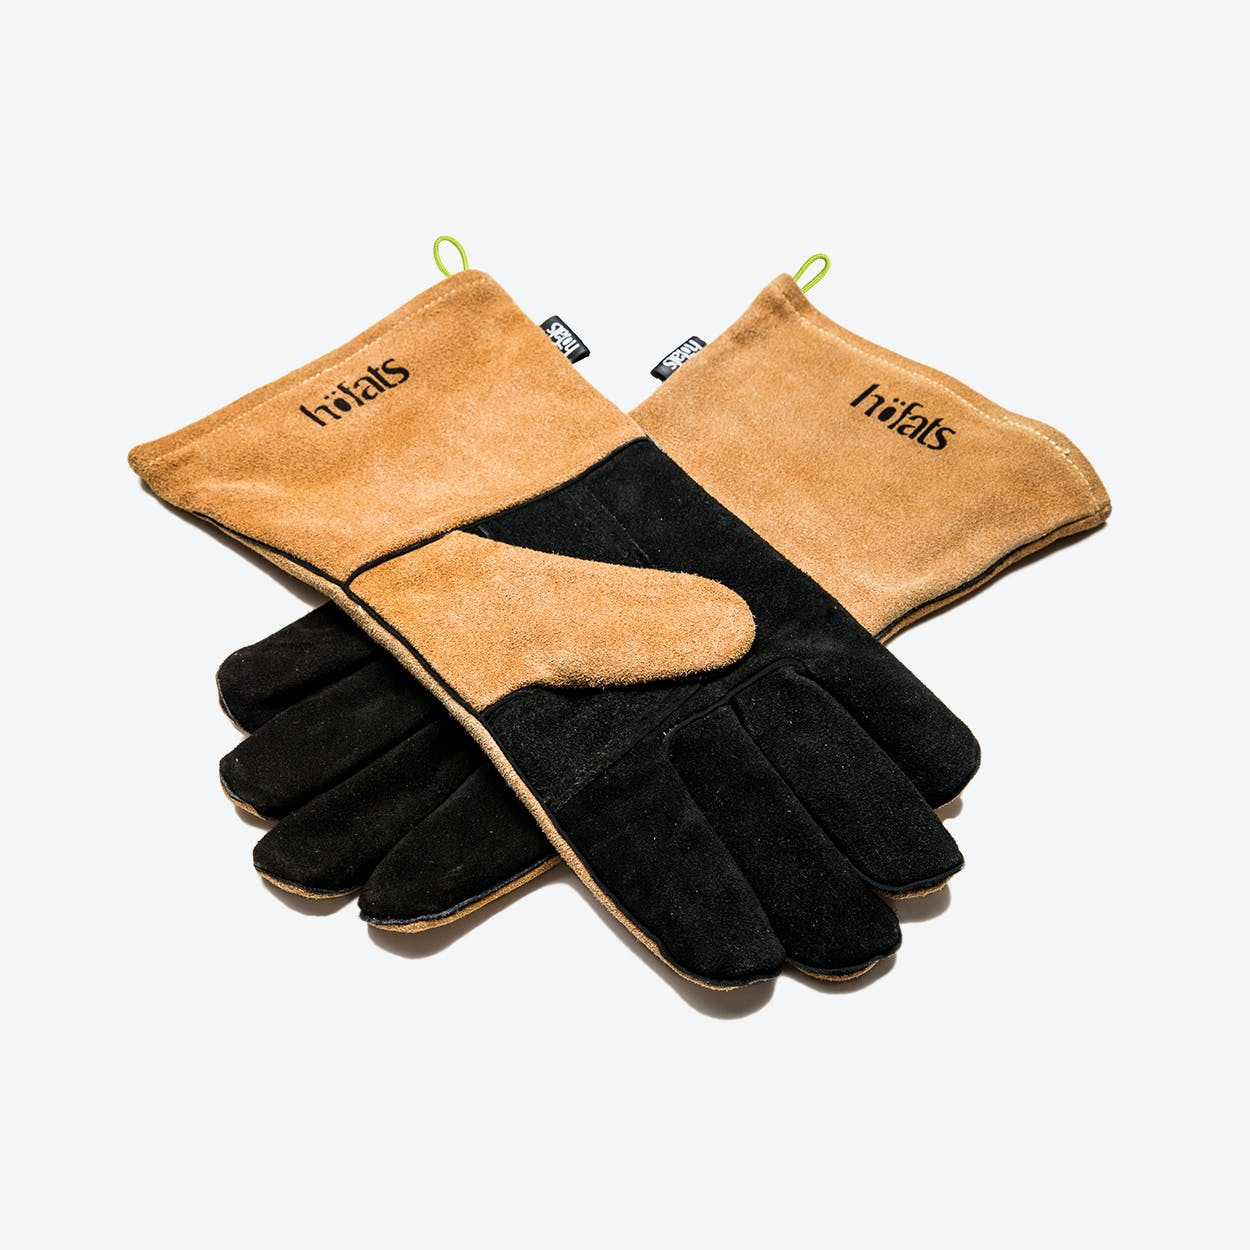 GLOVES by Hoefats